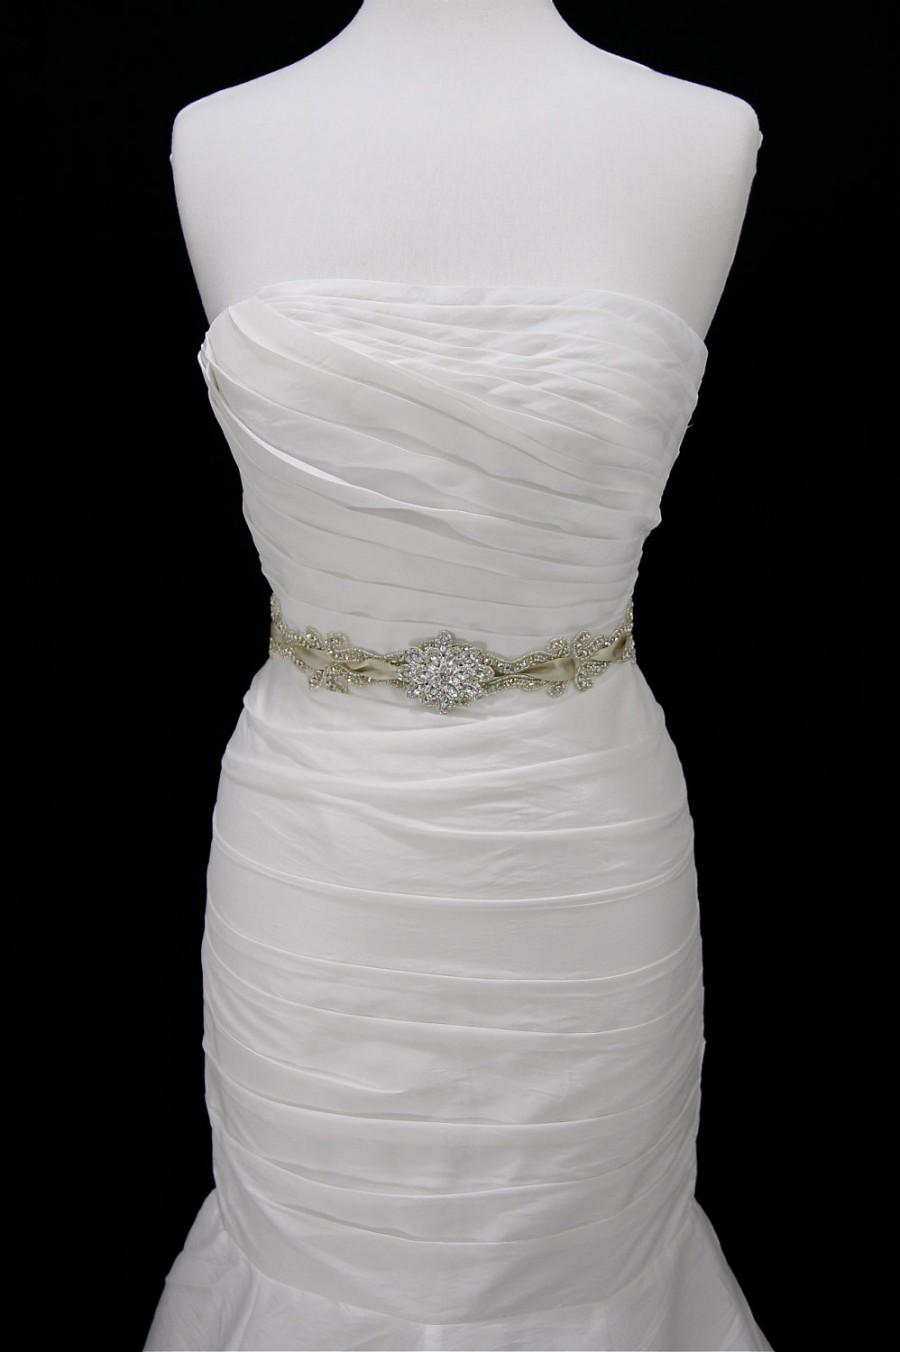 Mariage - Flower bridal sash,bridal Sash Belt,beaded belt,ribbon sash,champagne bridal belt,sash,rhinestone wedding belt,wedding gown belt,sash